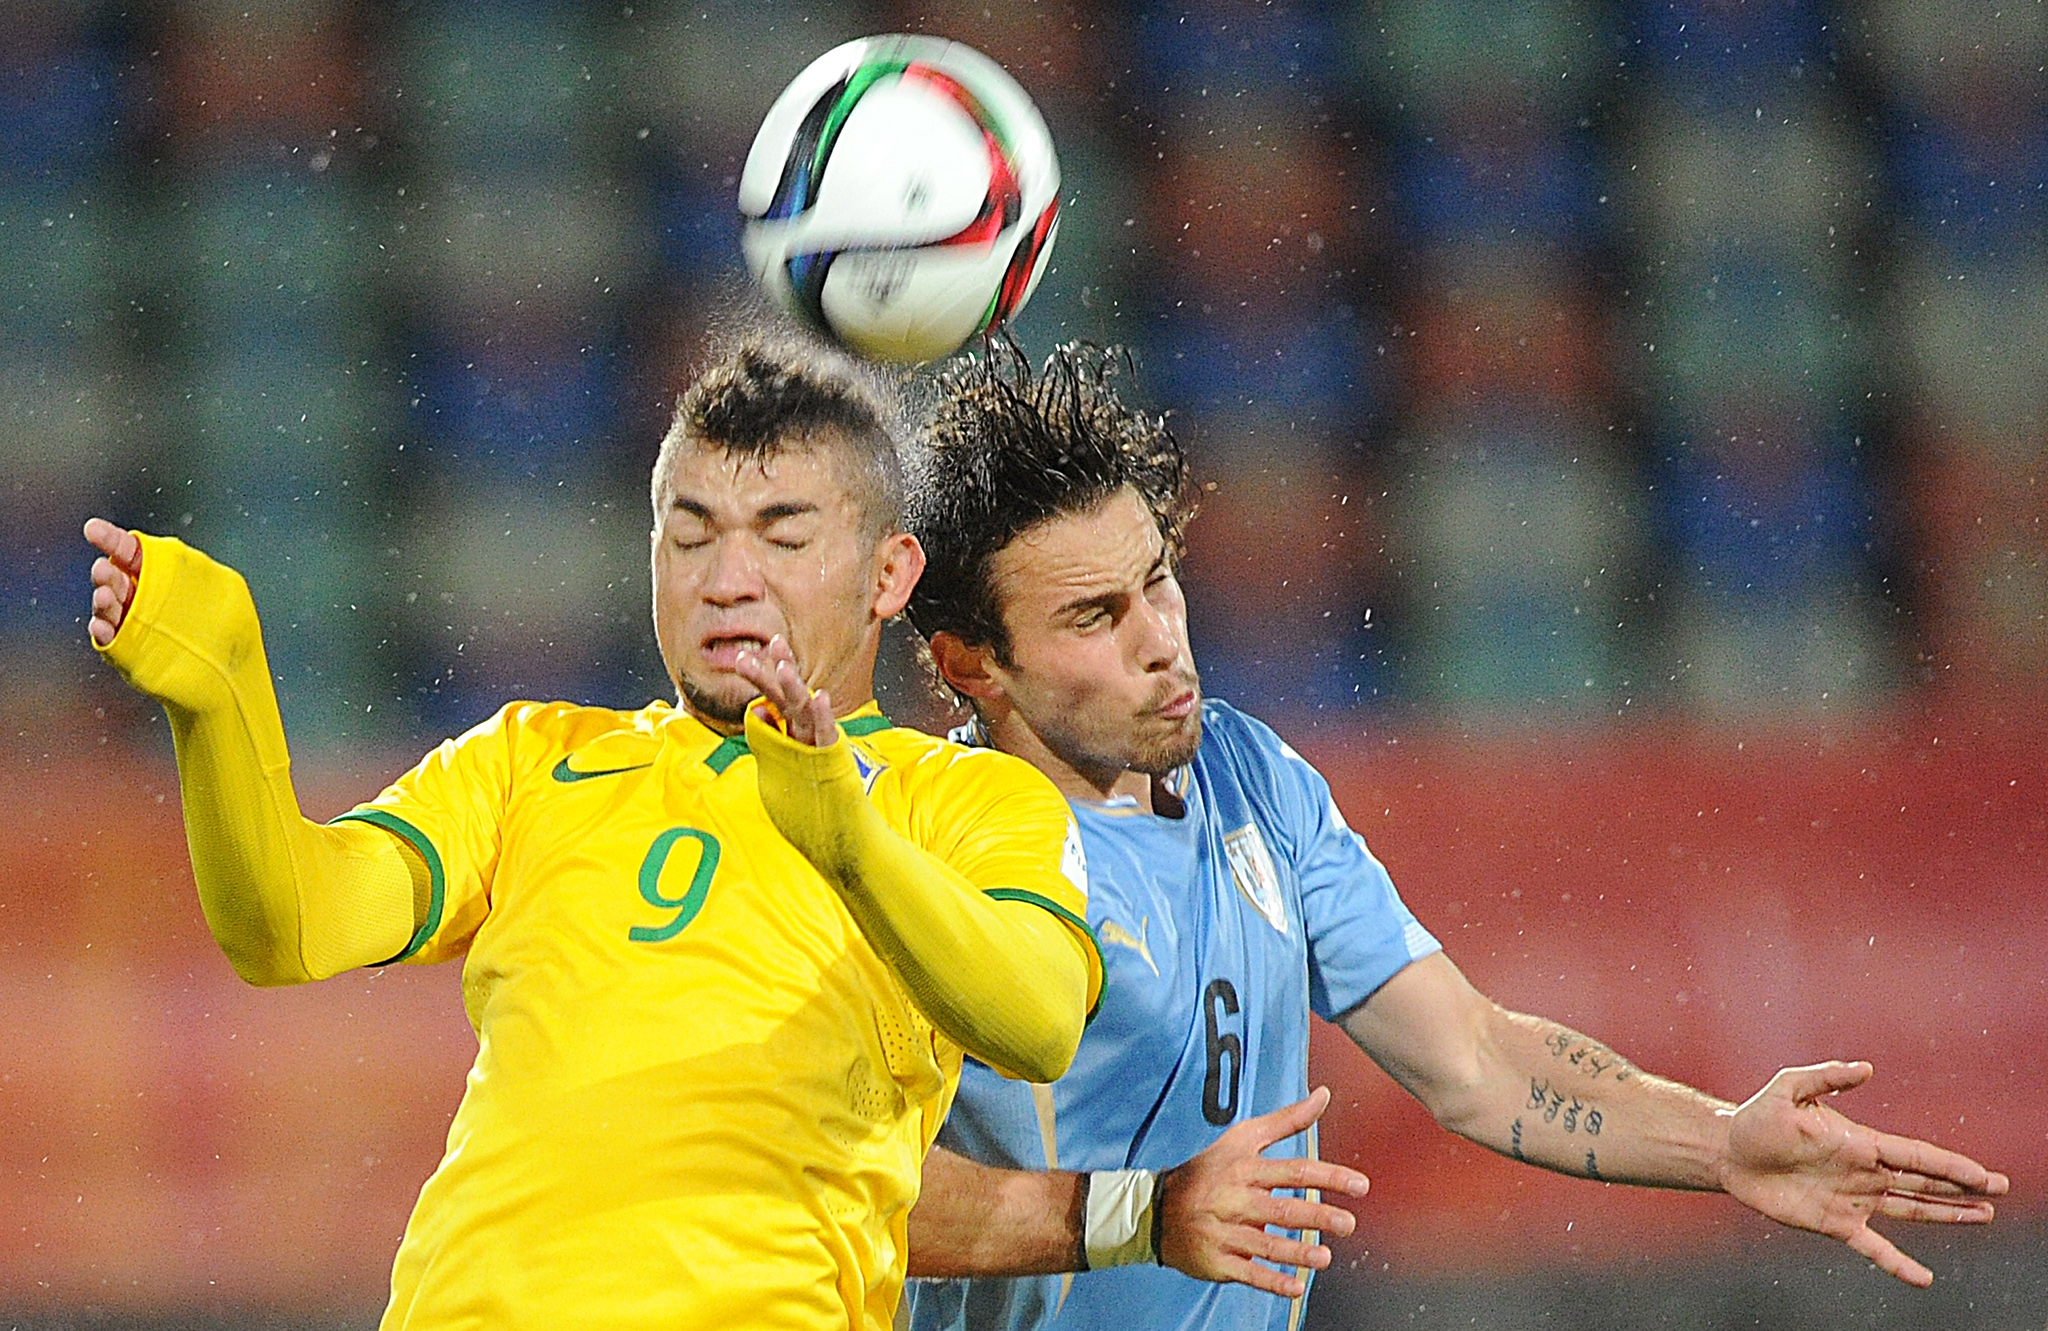 Brazil's Judivan, left, and Diego Poyet of Uruguay compete for a header during their U20 soccer World Cup match in New Plymouth, New Zealand, Thursday, June 11, 2015. (AP Photo/Ross Setford)